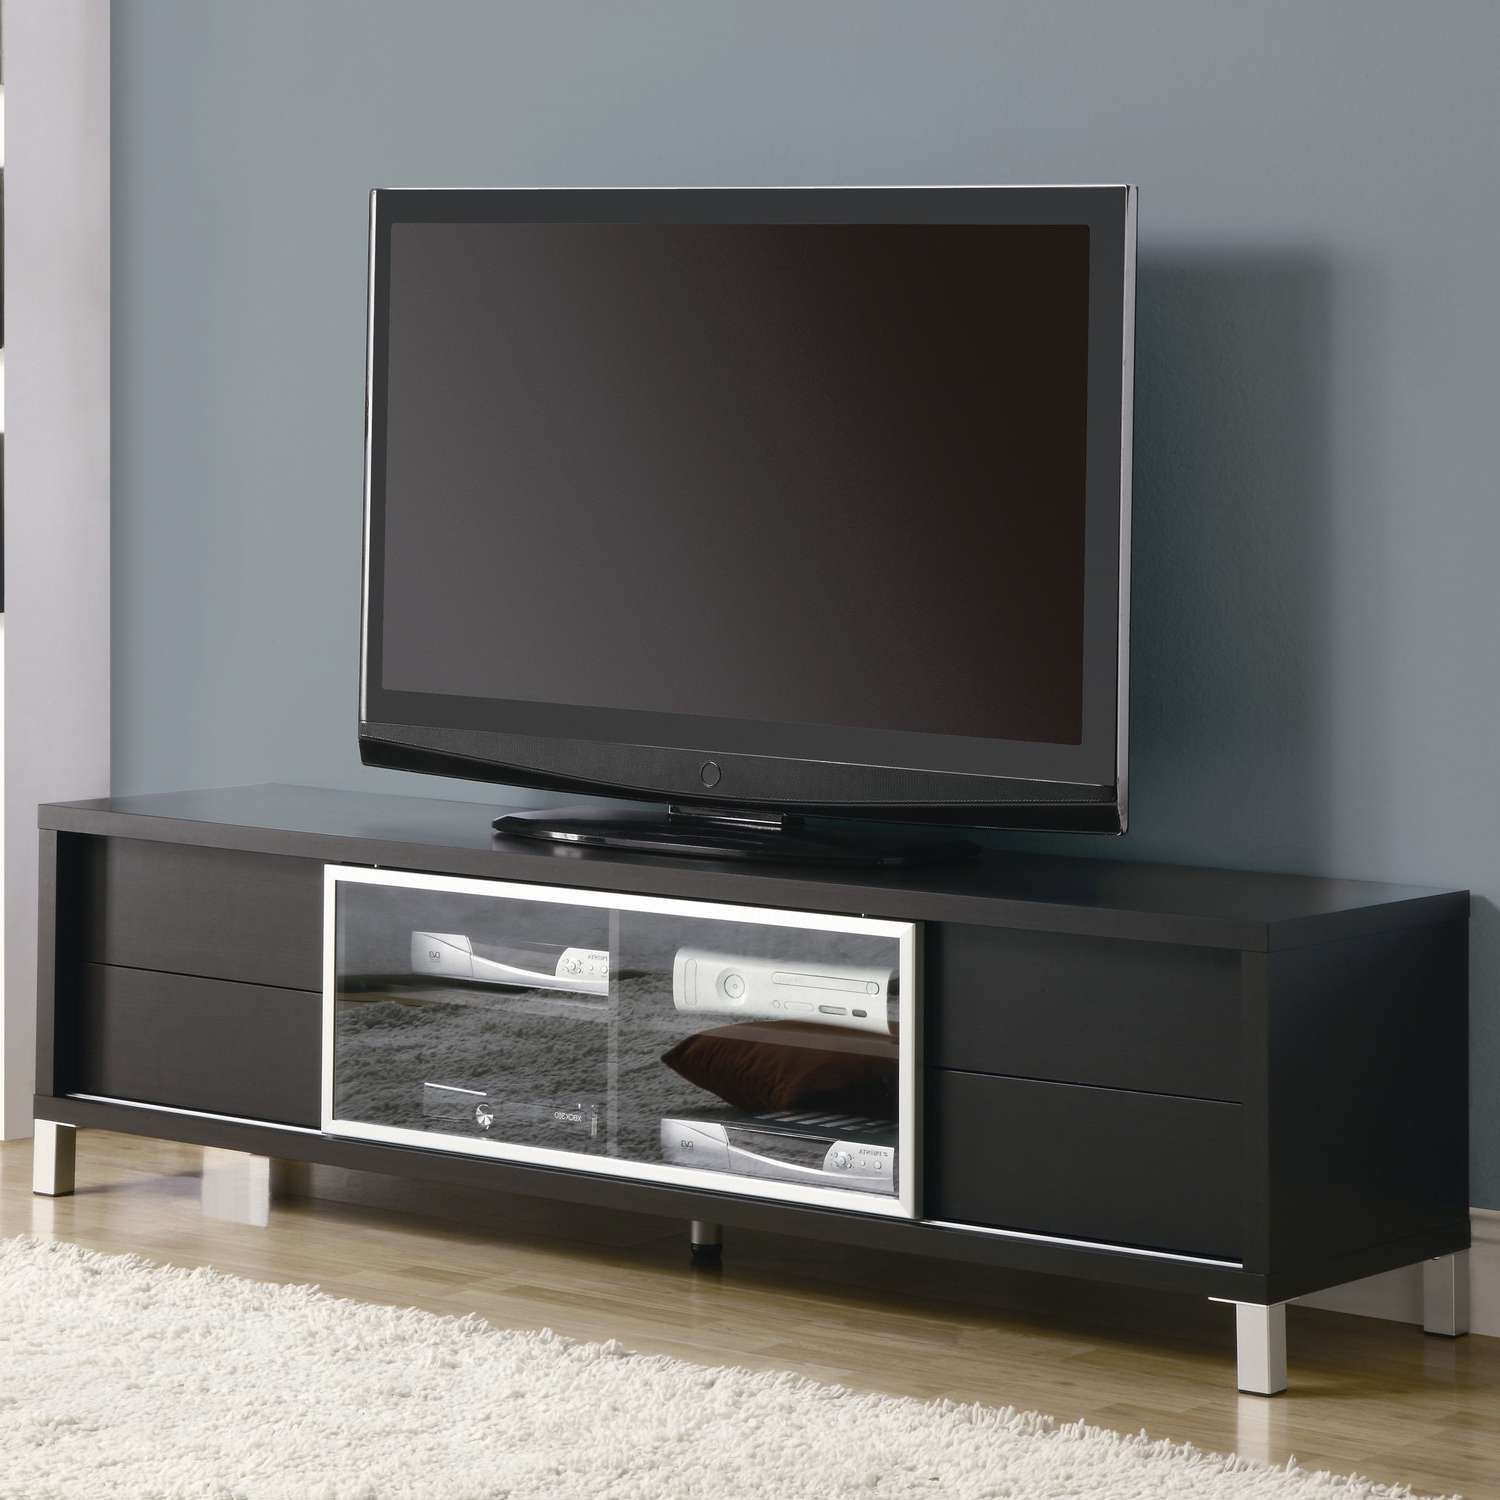 Small Flat Screen Tv For Sale In Smashing Wood Oak Tv Stand Along Intended For Long Black Tv Stands (View 14 of 15)